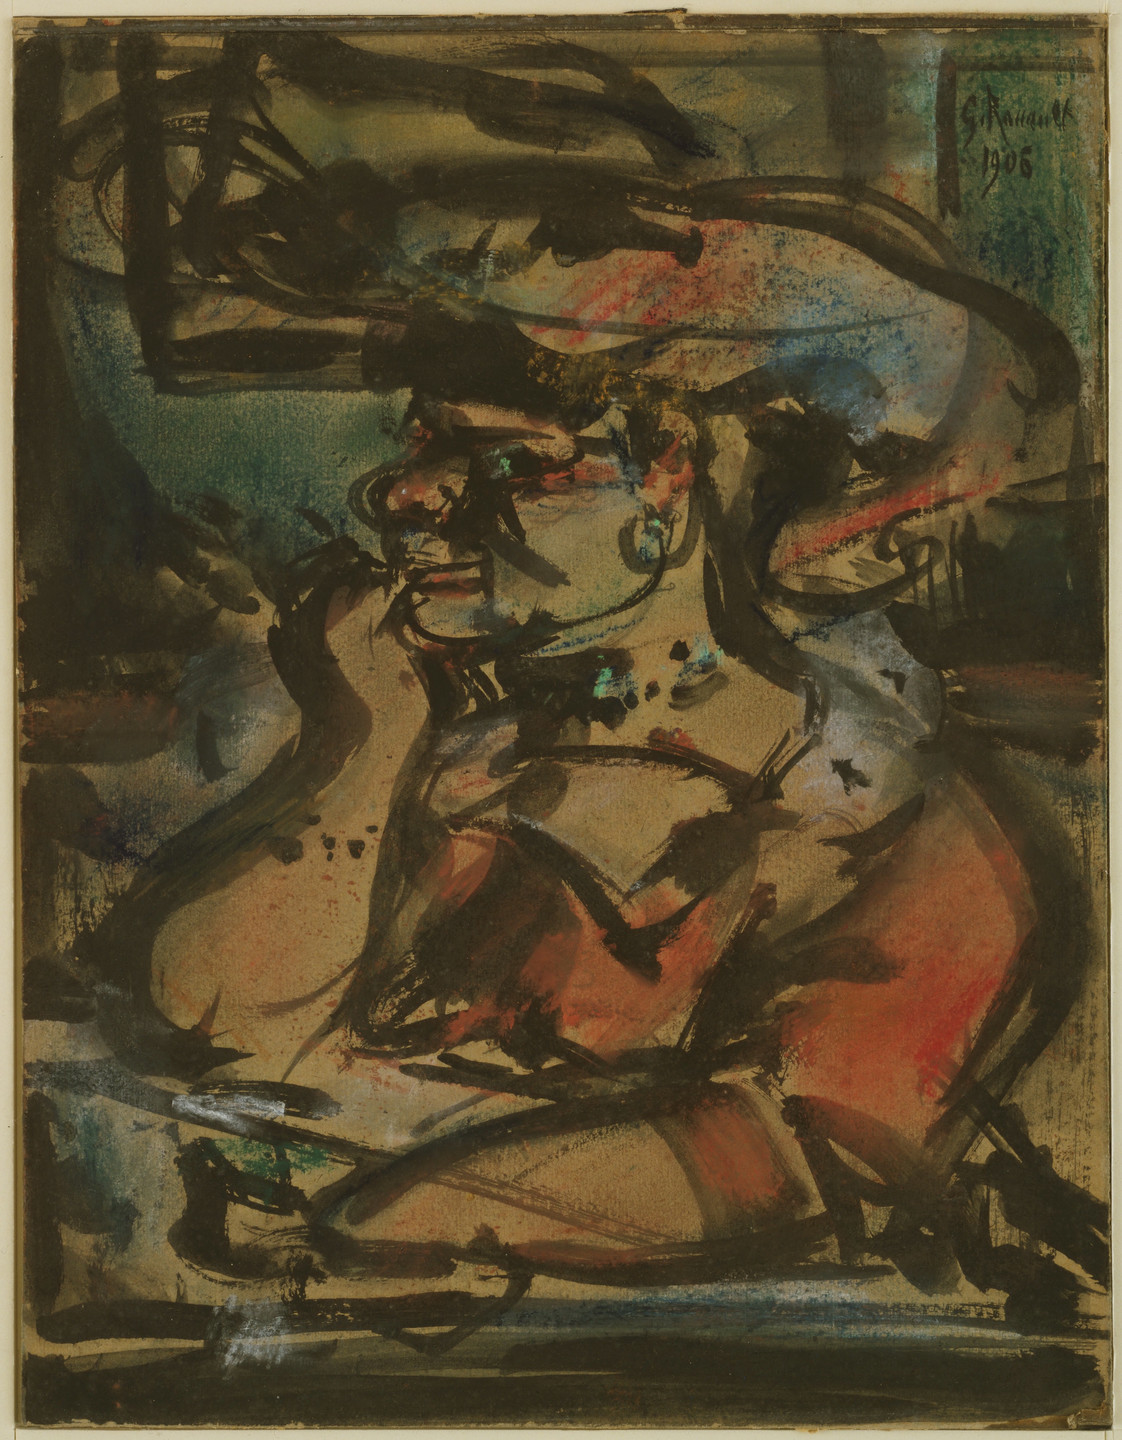 Georges Rouault. Woman at a Table (The Procuress). 1906